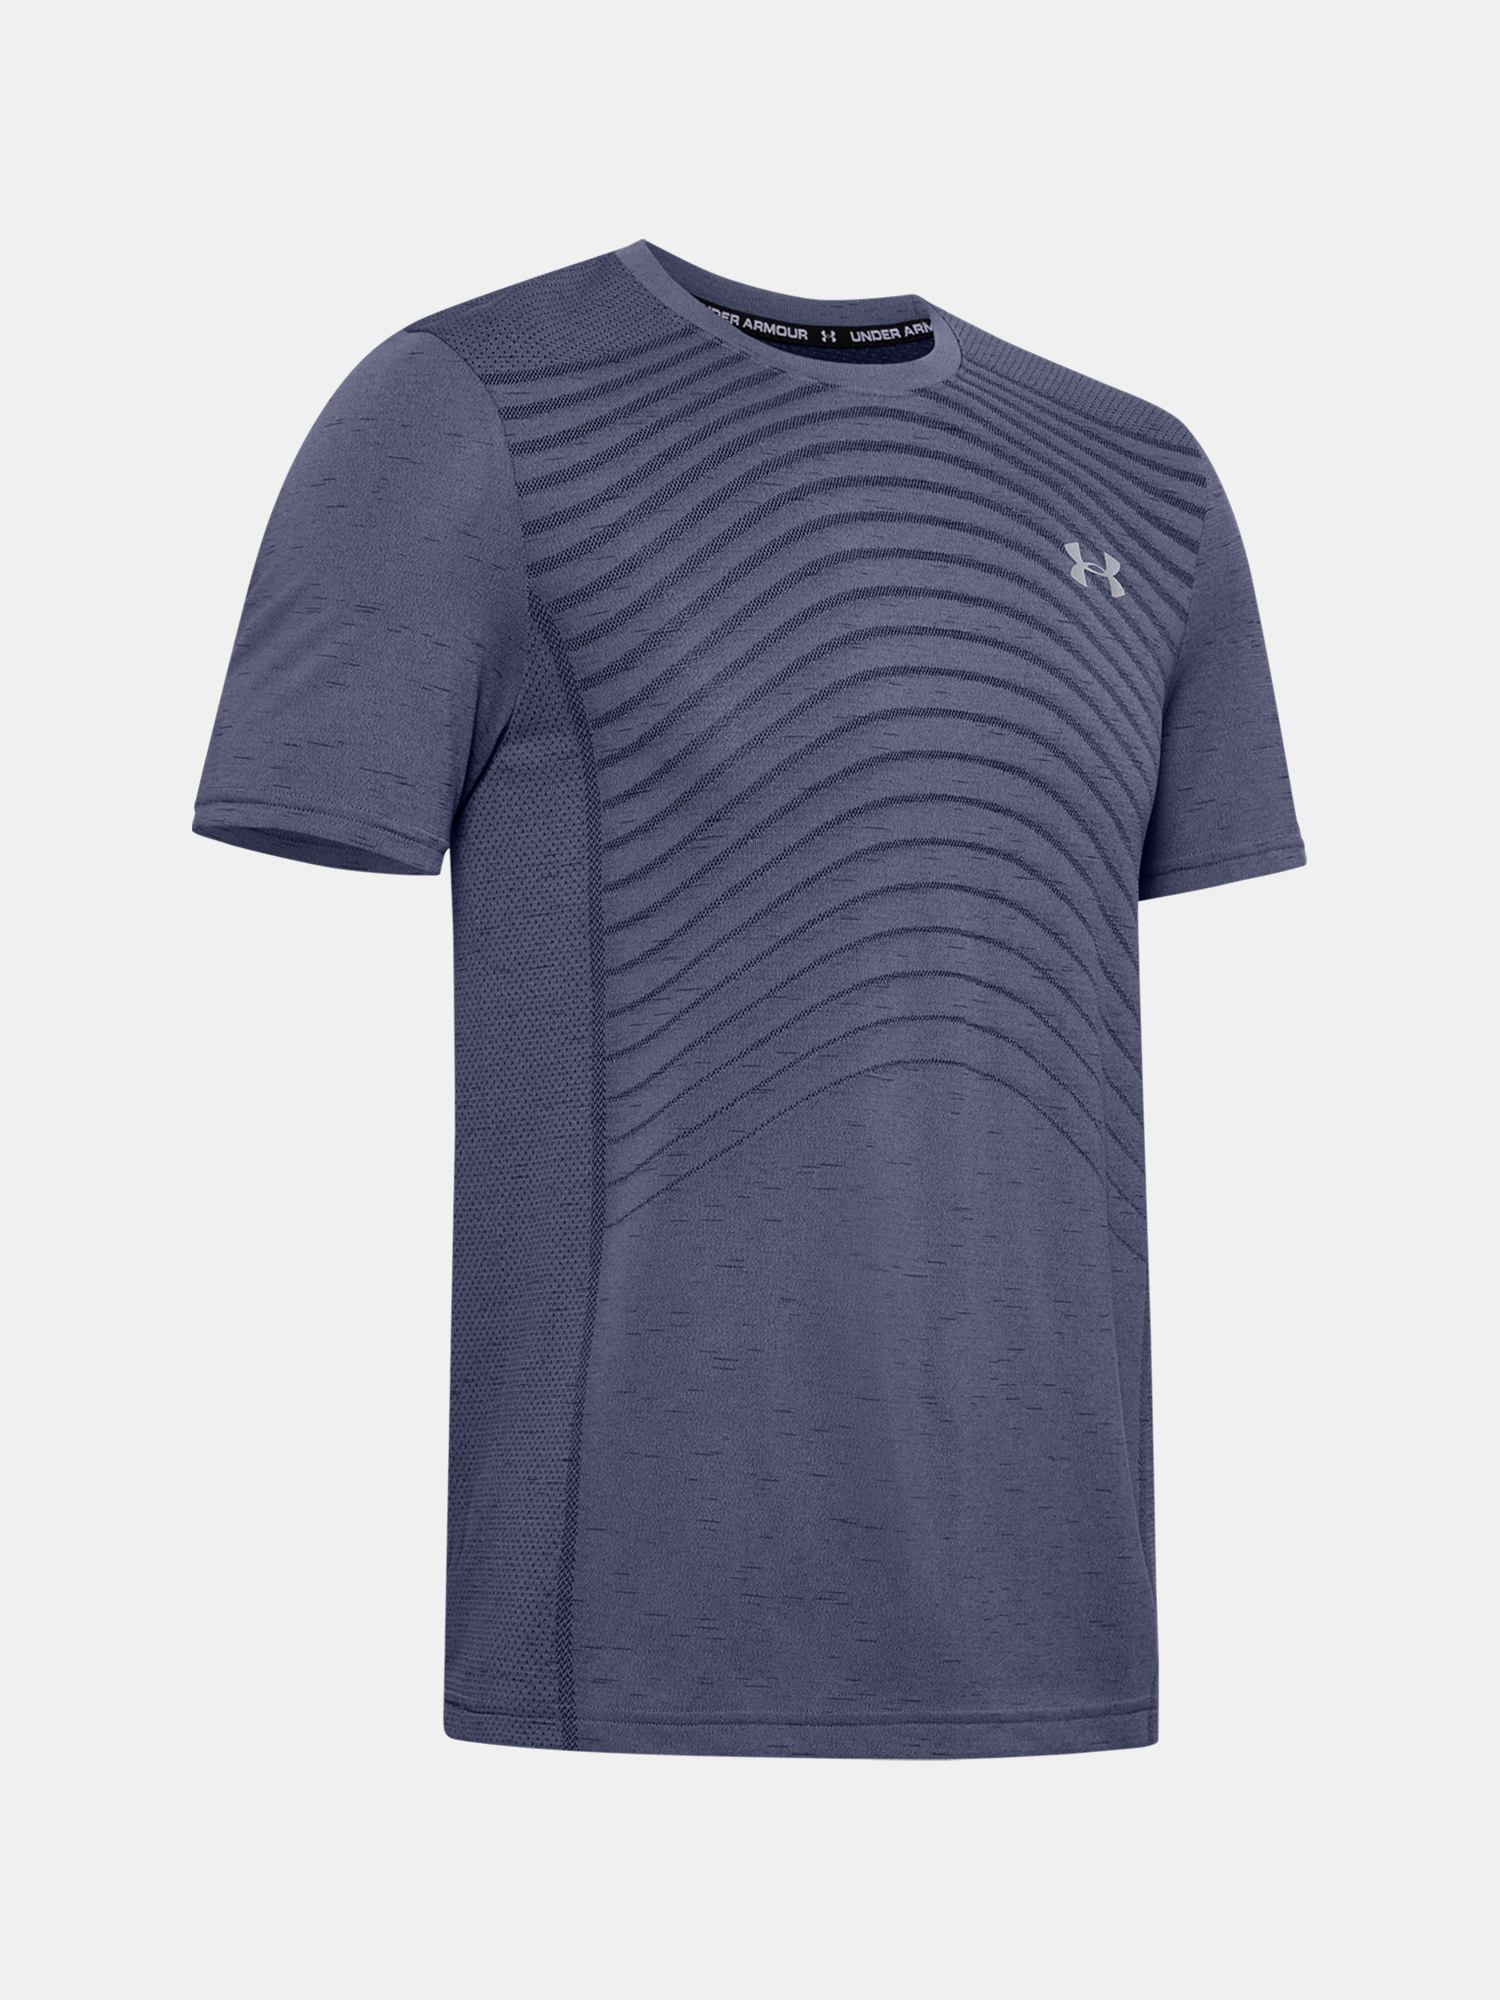 Tričko Under Armour Seamless Wave Ss (5)